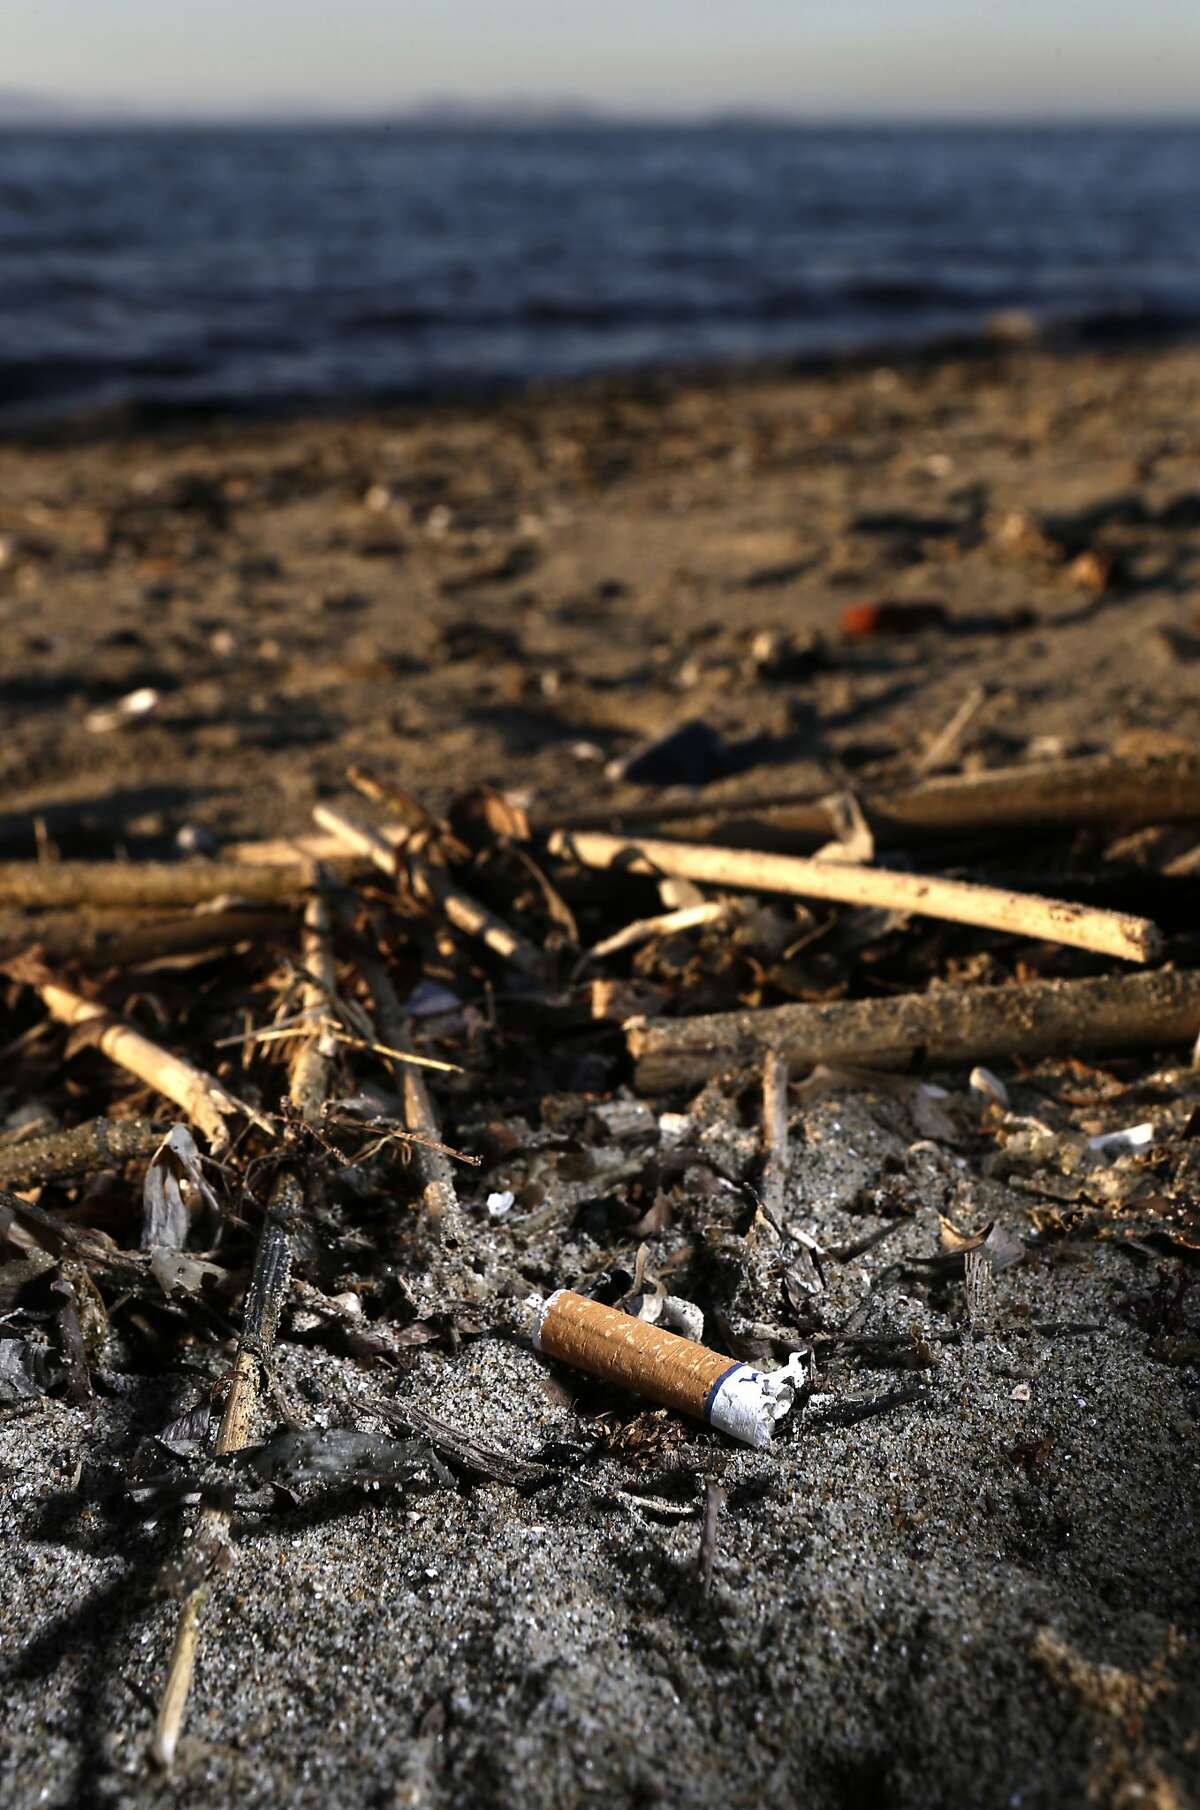 Cigarette filters are seen washed up on shore along the edge of San Francisco Bay on Wednesday Jan. 22, 2014, near Emeryville, Calif. New legislation introduced last week by state Assemblyman Mark Stone, D-Monterey underscores just how potent cigarette single use filters are. As many as 845,000 tons of cigarette buffeters wind up as litter around the globe annually.